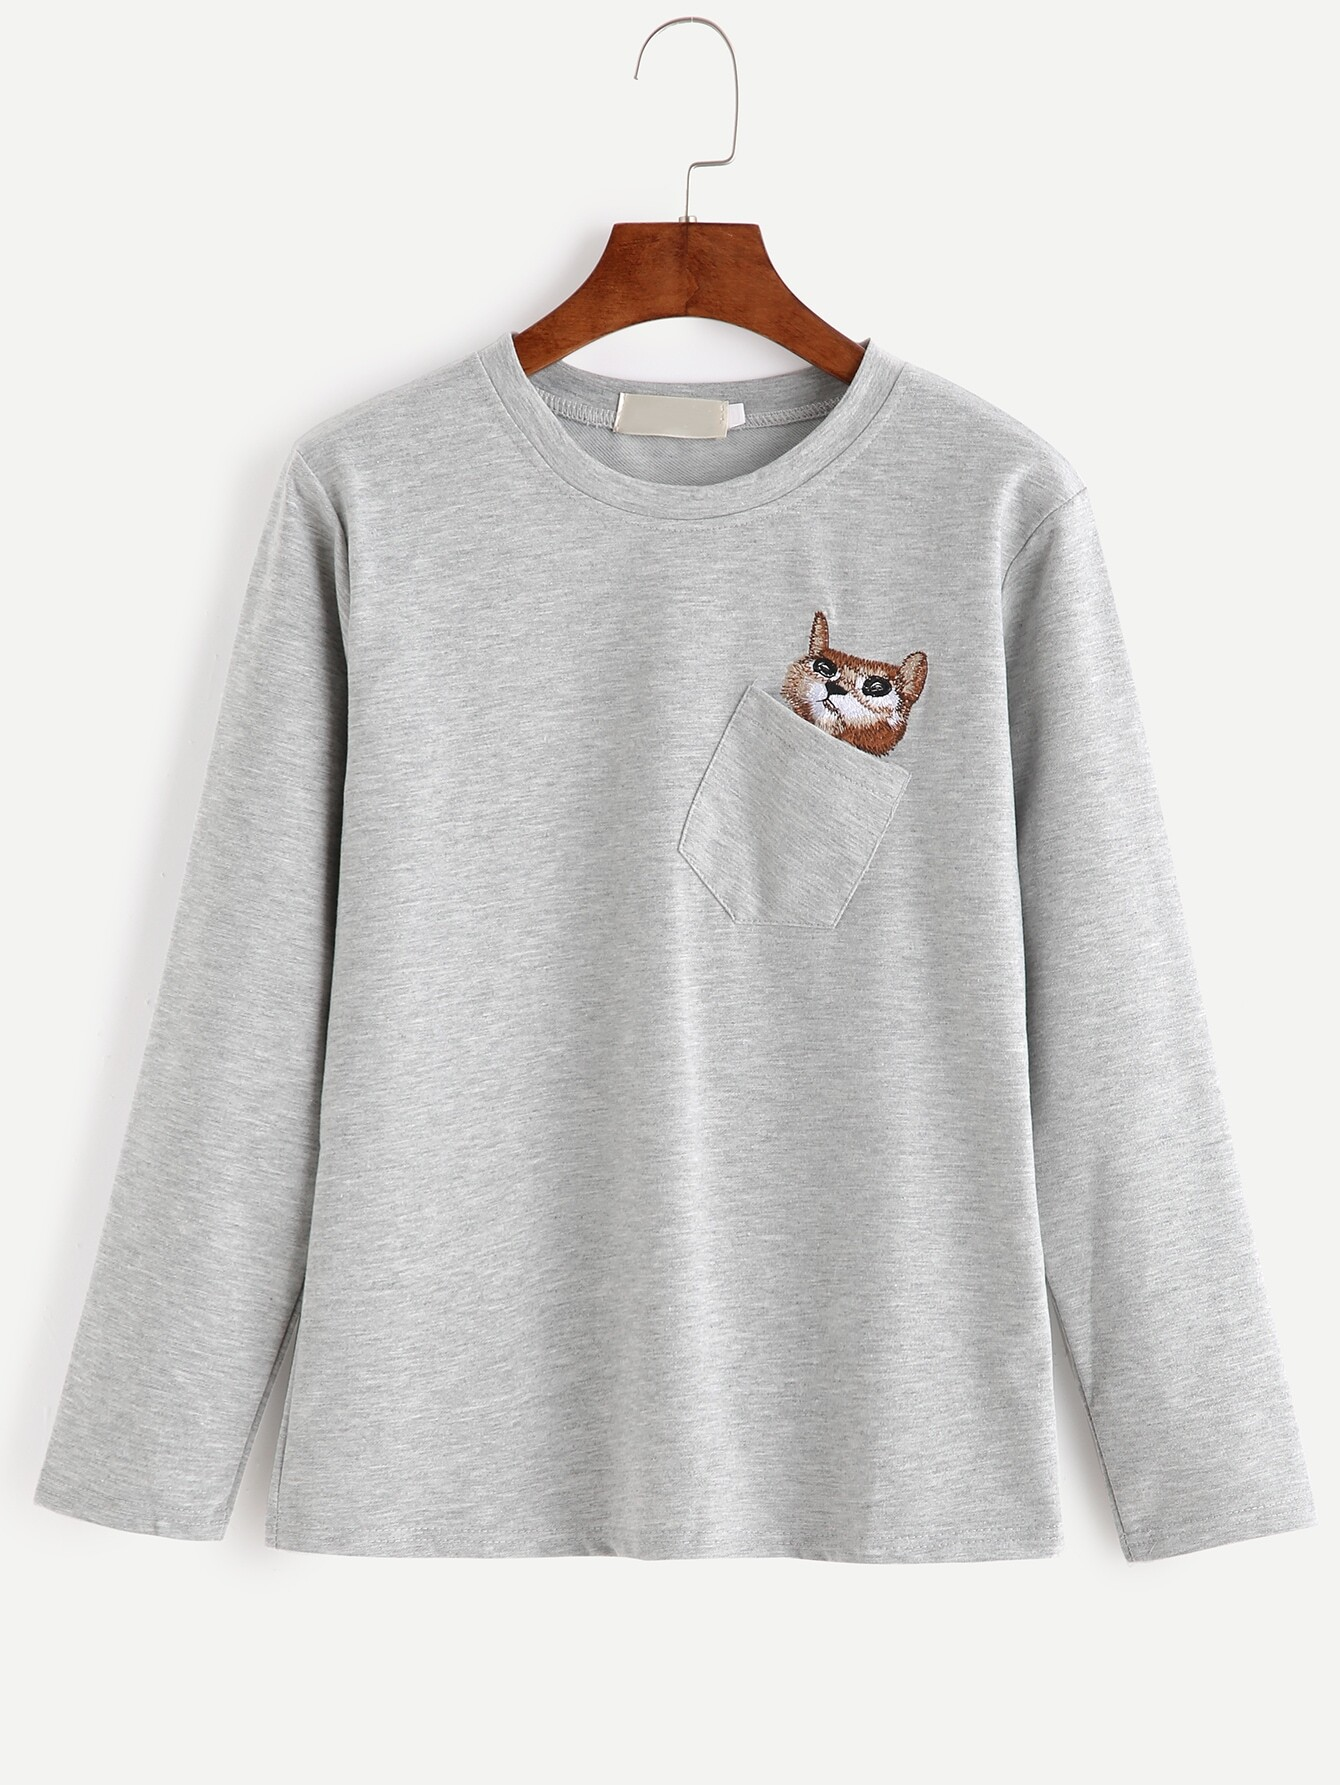 Heather grey cat embroidered pocket t shirt